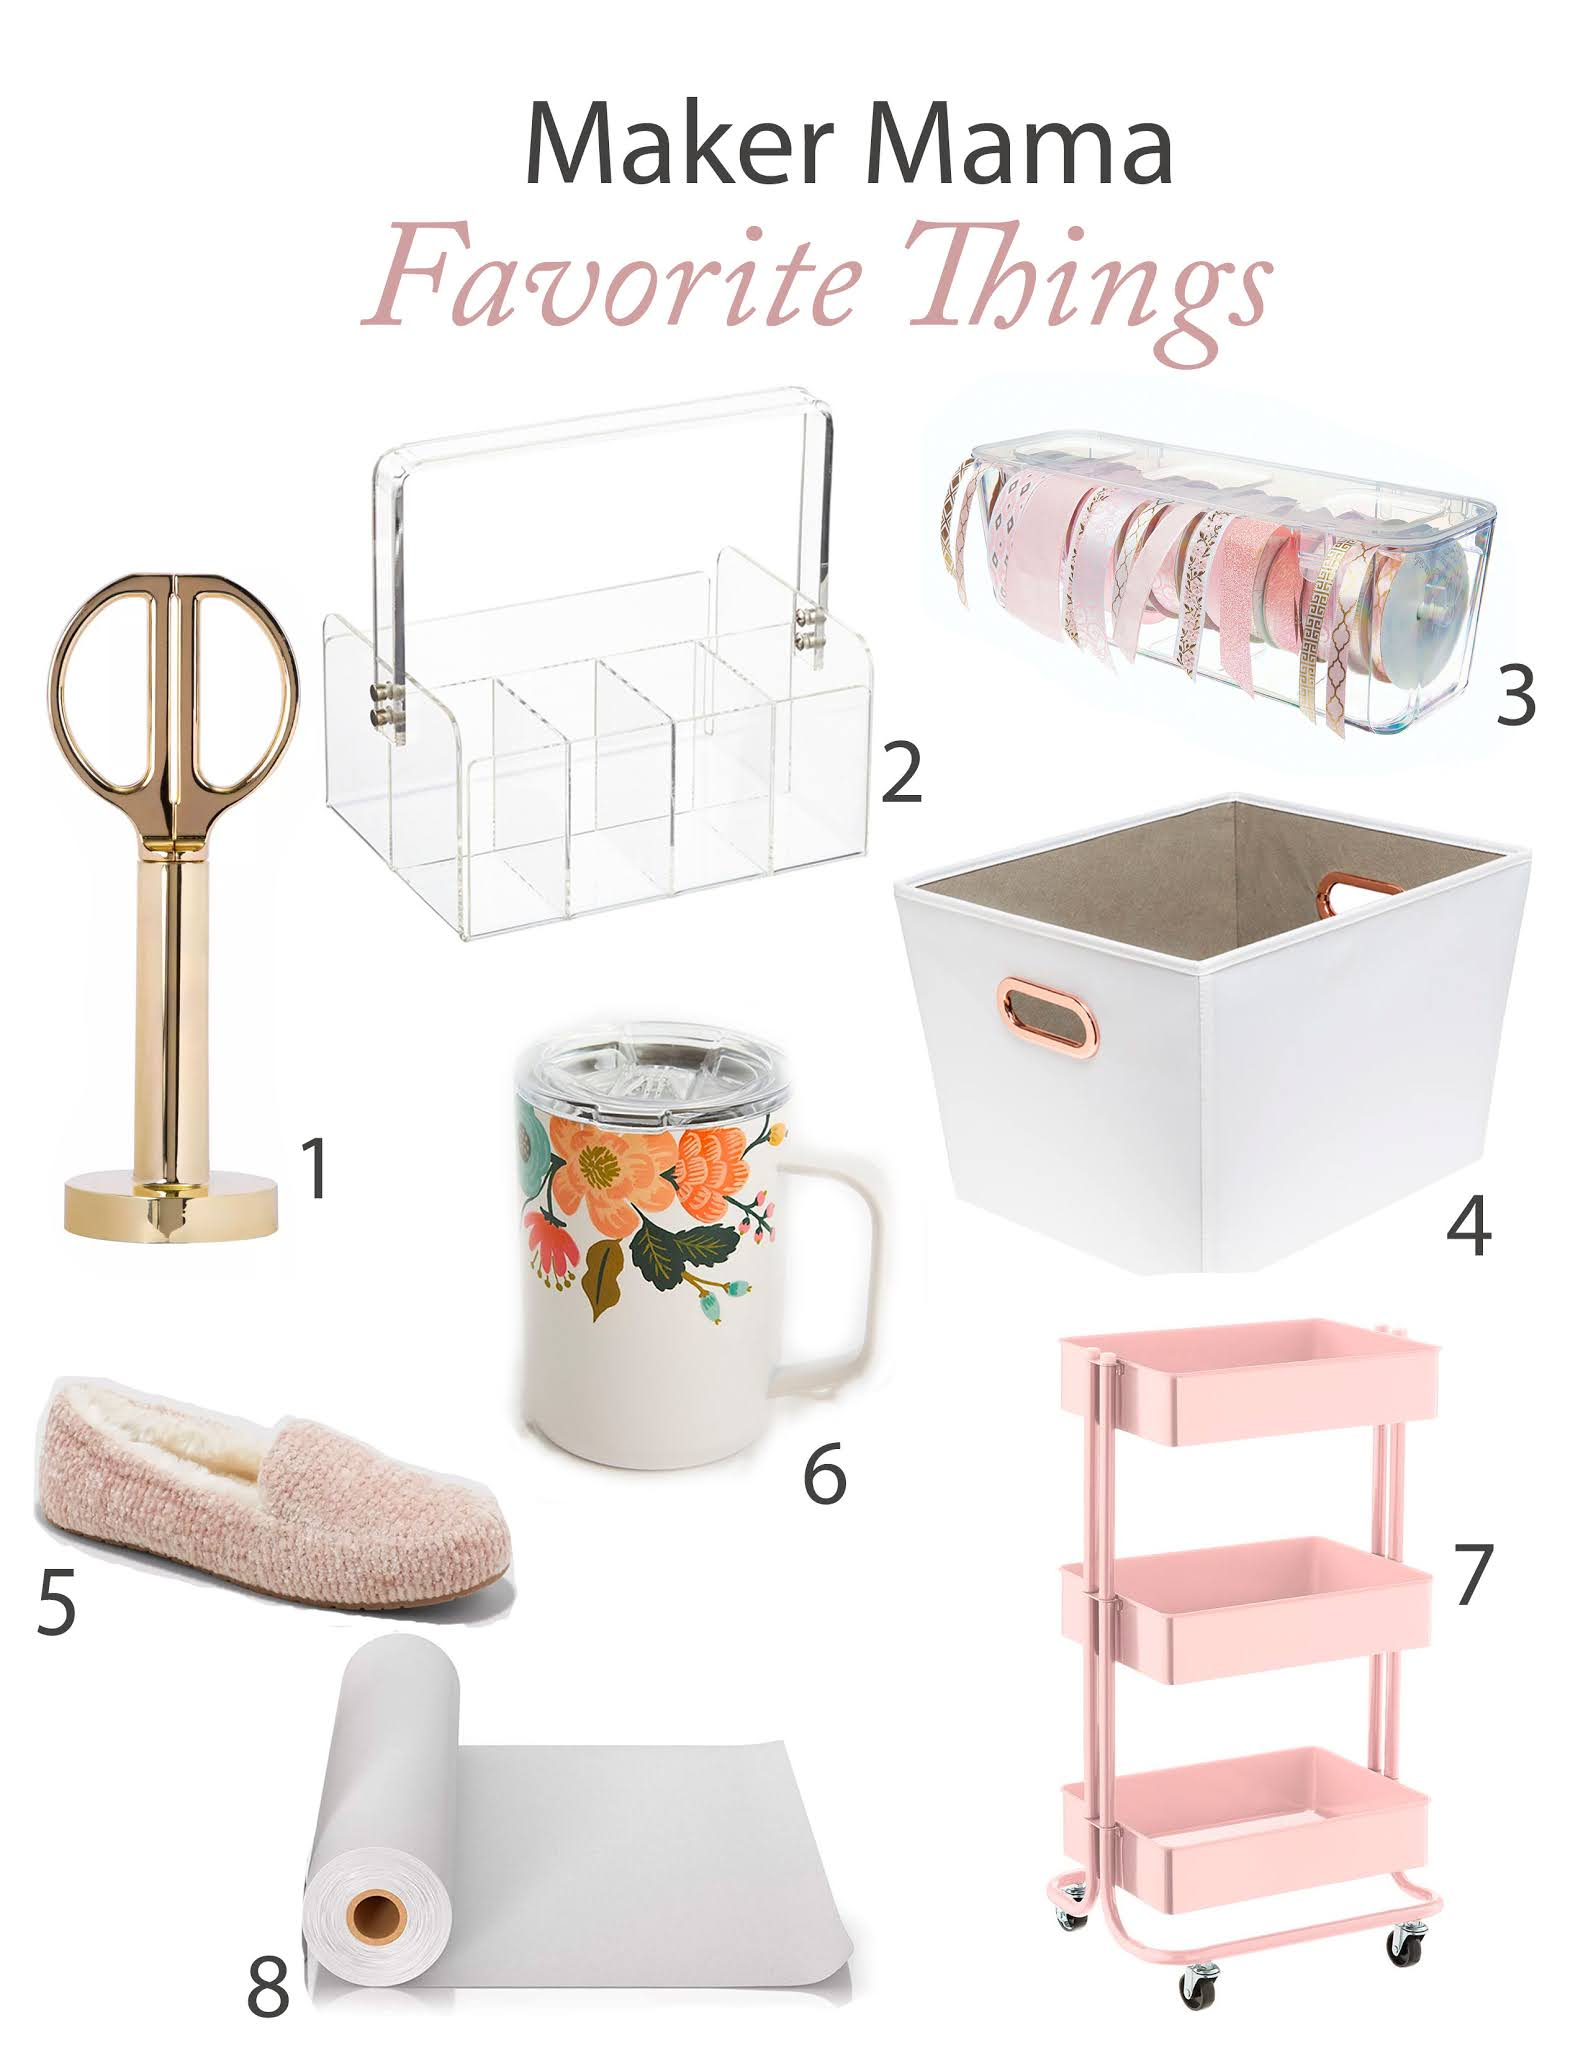 maker mama favorite things